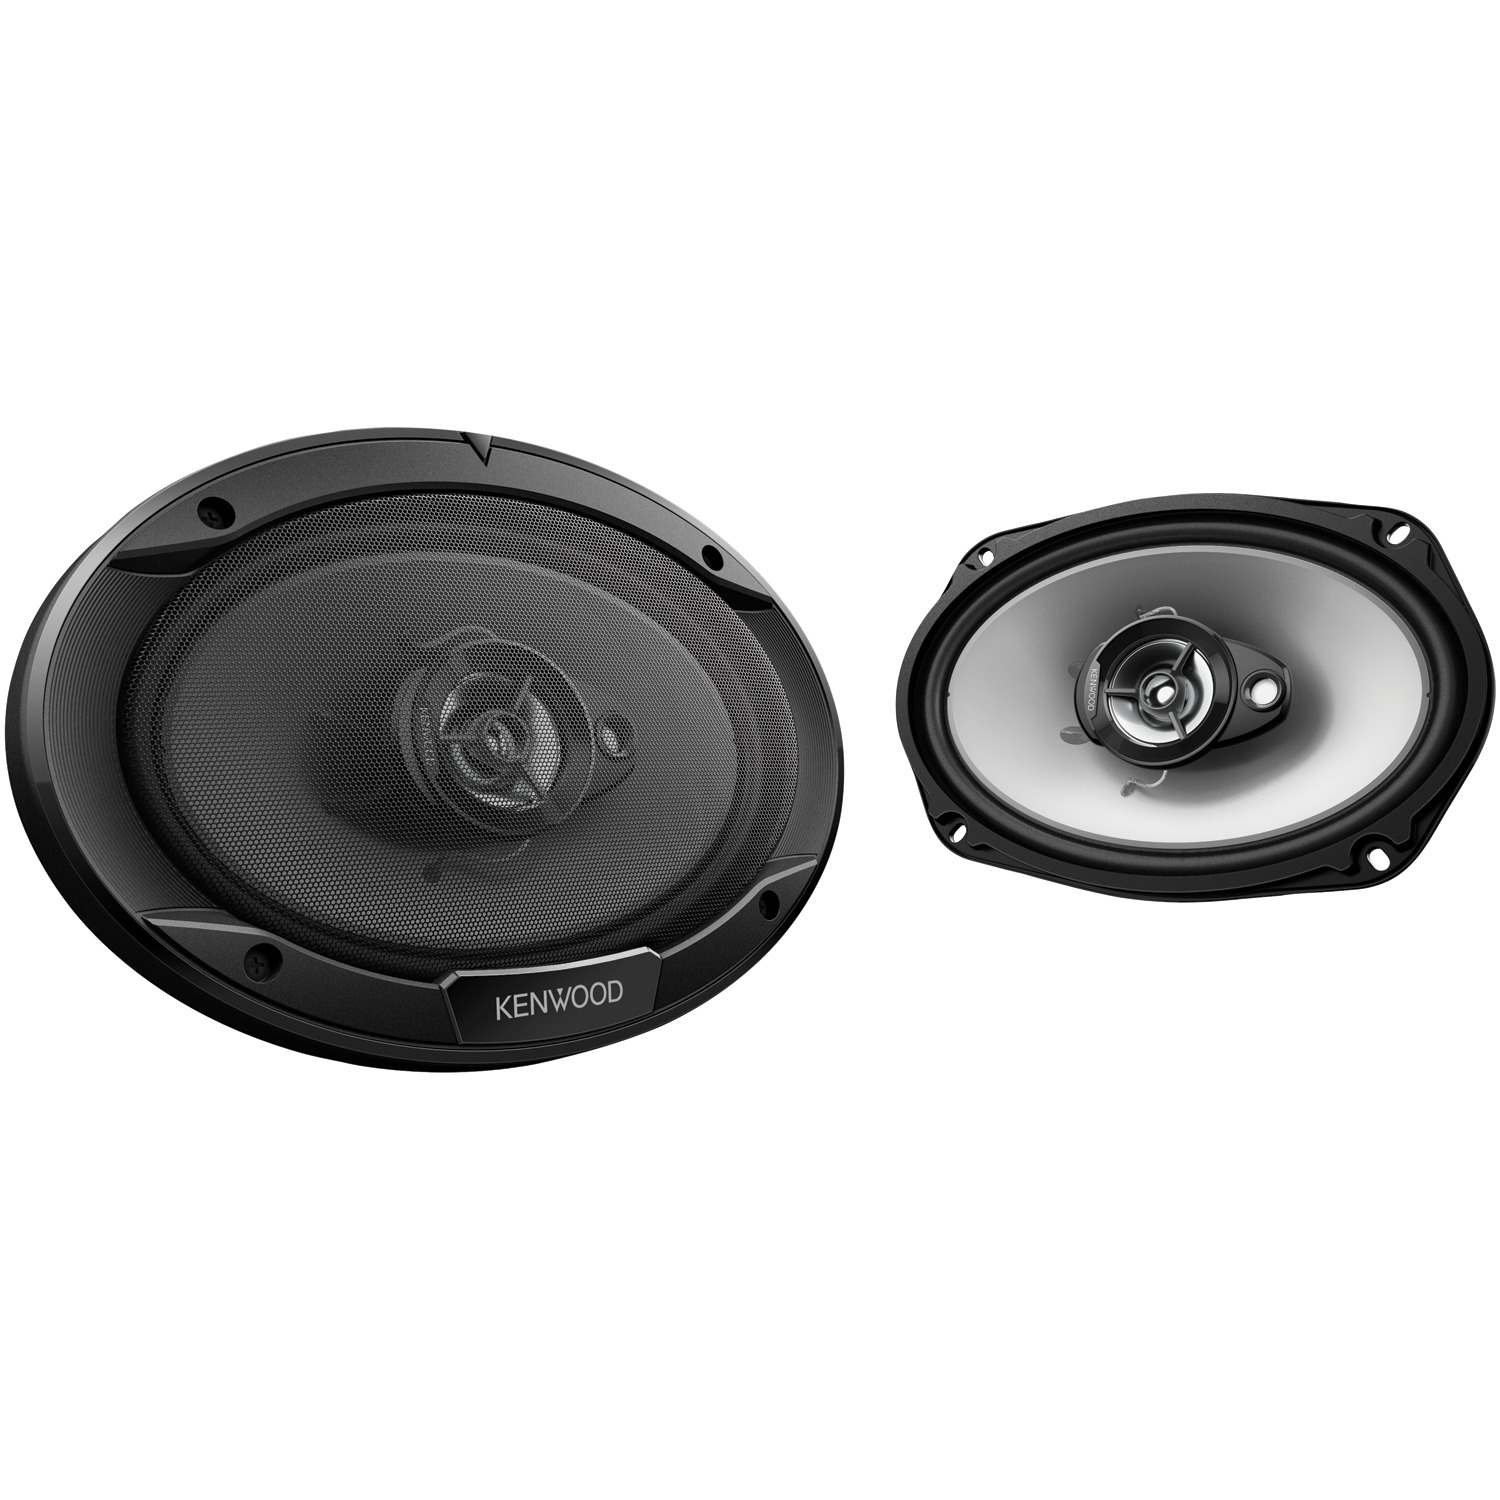 "Kenwood KFC-6966S Sport Series Coaxial Speakers (6"" X 9"", 3 Way, 400 Watts)"